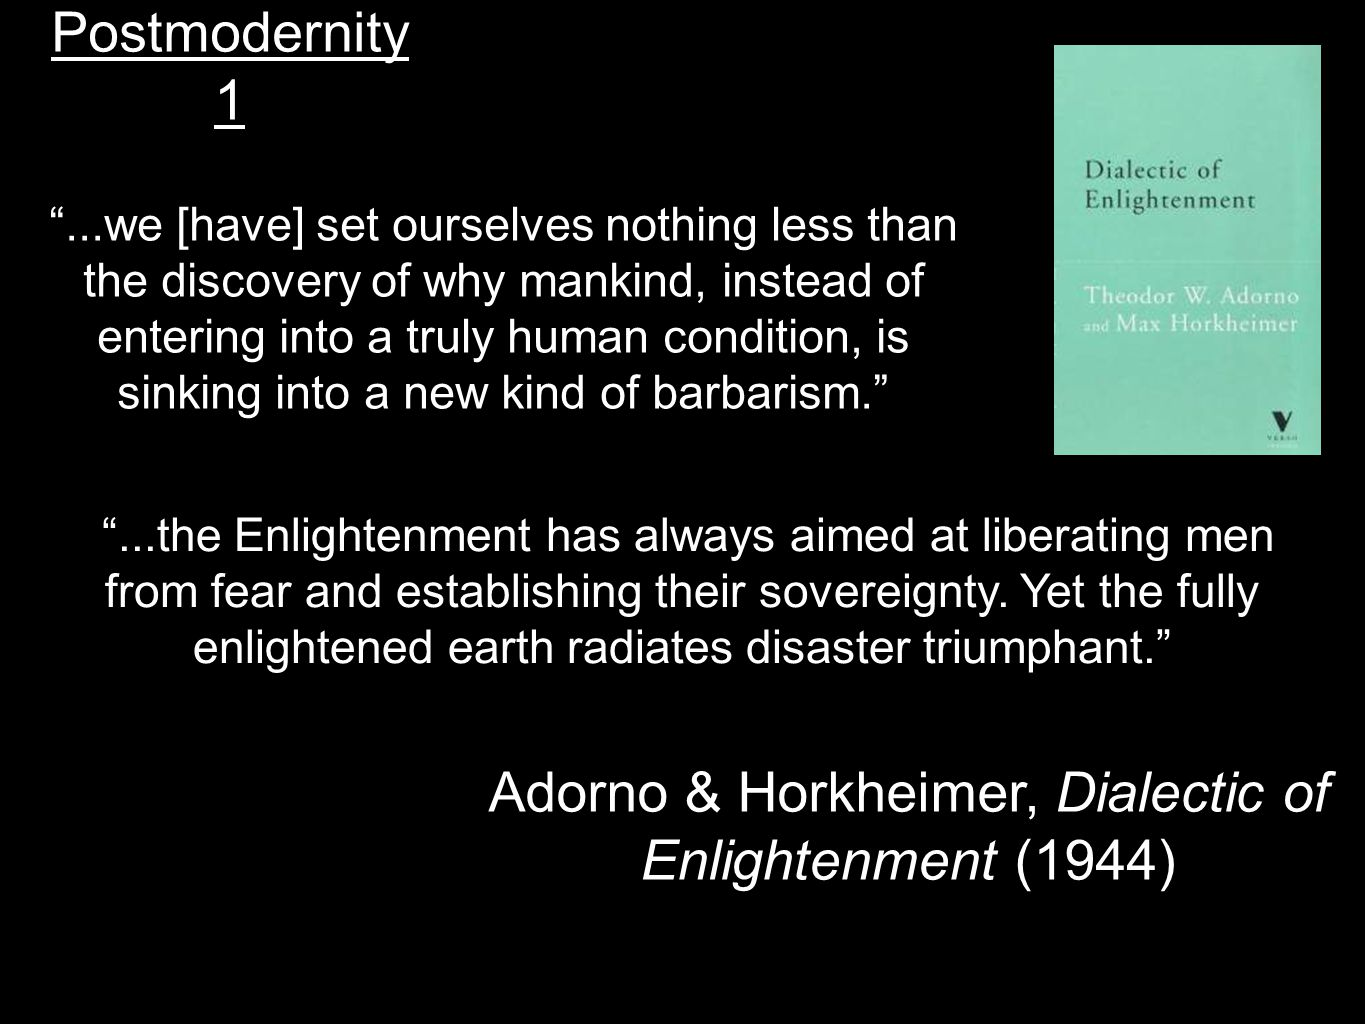 "Postmodernity 1 Adorno & Horkheimer, Dialectic of Enlightenment (1944) ""...we [have] set ourselves nothing less than the discovery of why mankind, ins"